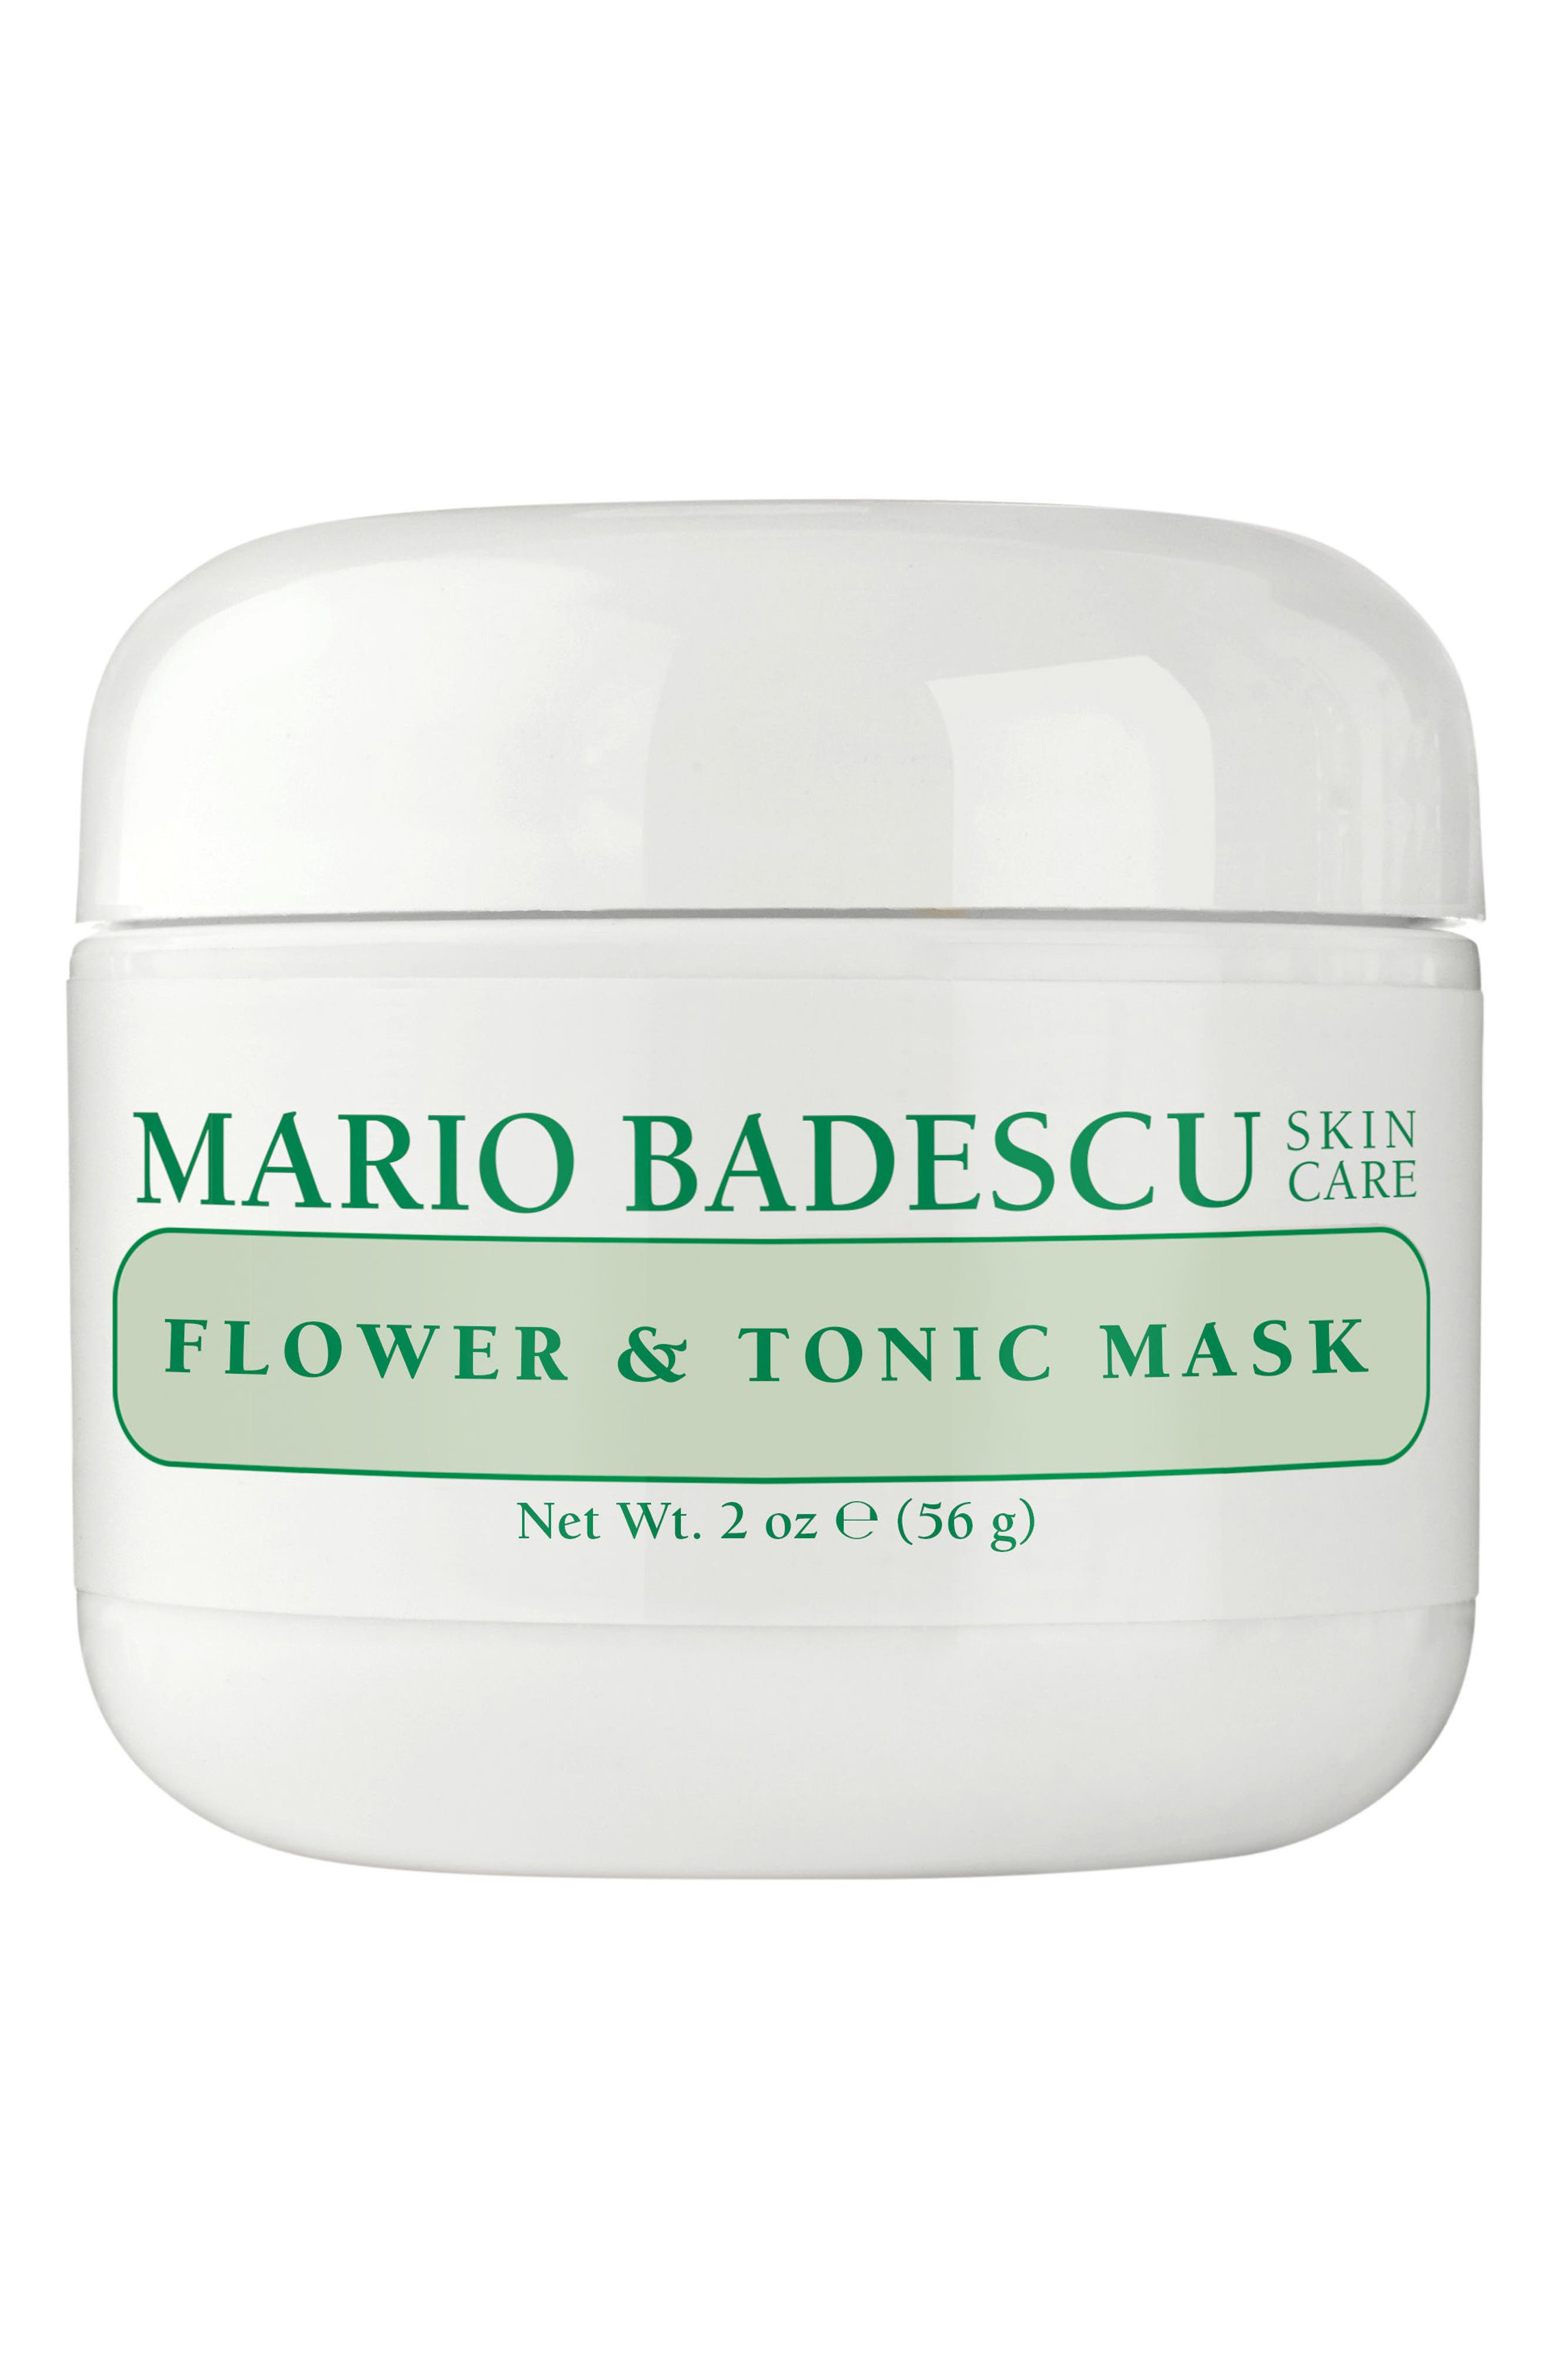 Flower & Tonic Mask,                         Main,                         color, NONE